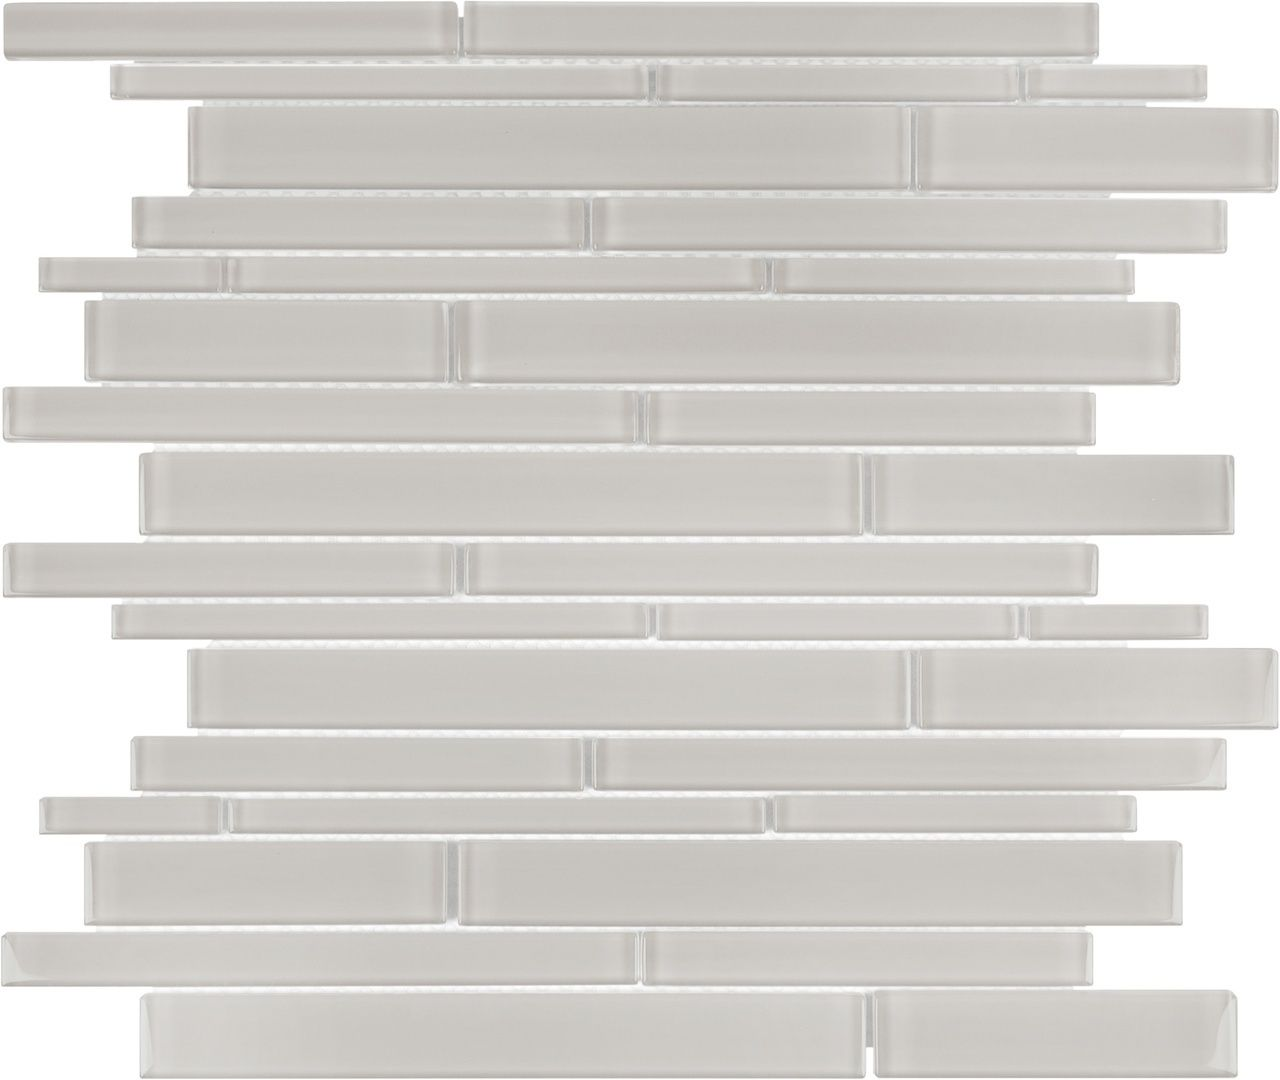 Discount Glass Tile Store - BLISS GLASS - RANDOM STRIP MIST ELEMENTS - SALE, $8.85 (http://www.discountglasstilestore.com/bliss-glass-random-strip-mist-elements-sale/)